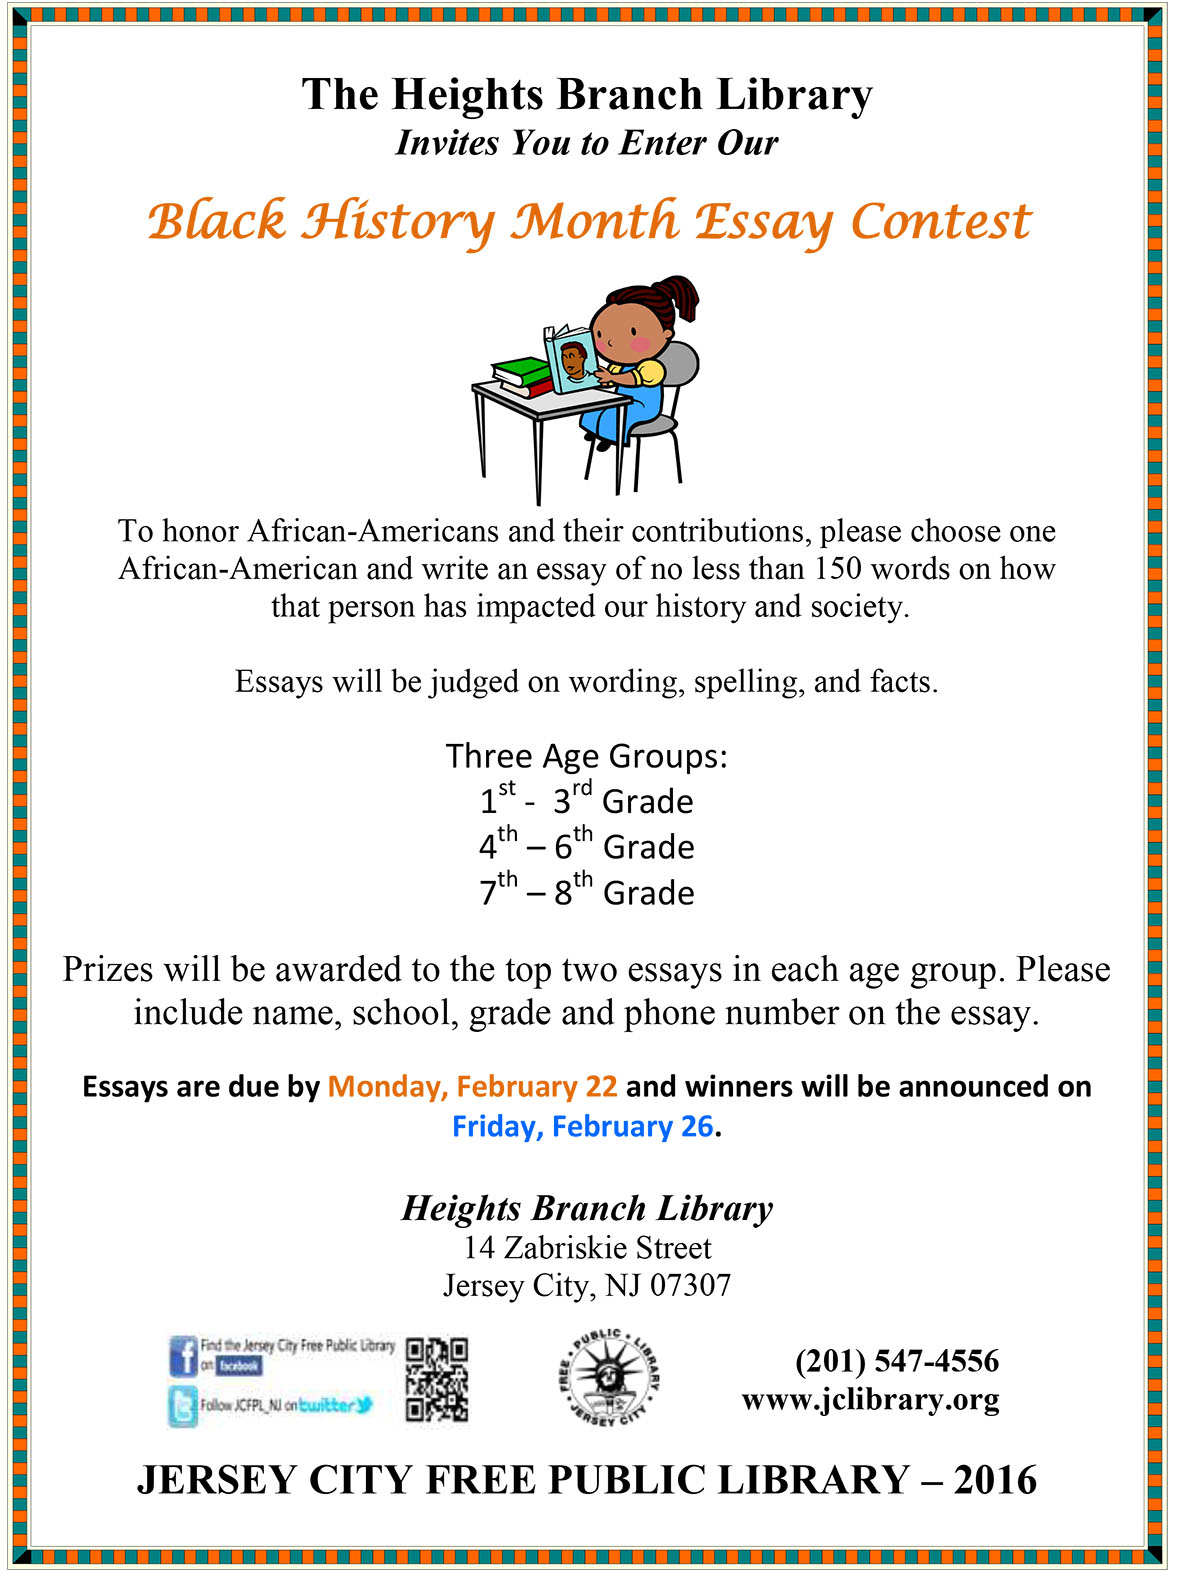 black history essay theme Bloomington, ind - the city of bloomington black history month committee announced that the 2018 theme for its annual black history month essay contest is from protest to progress: unmasking.